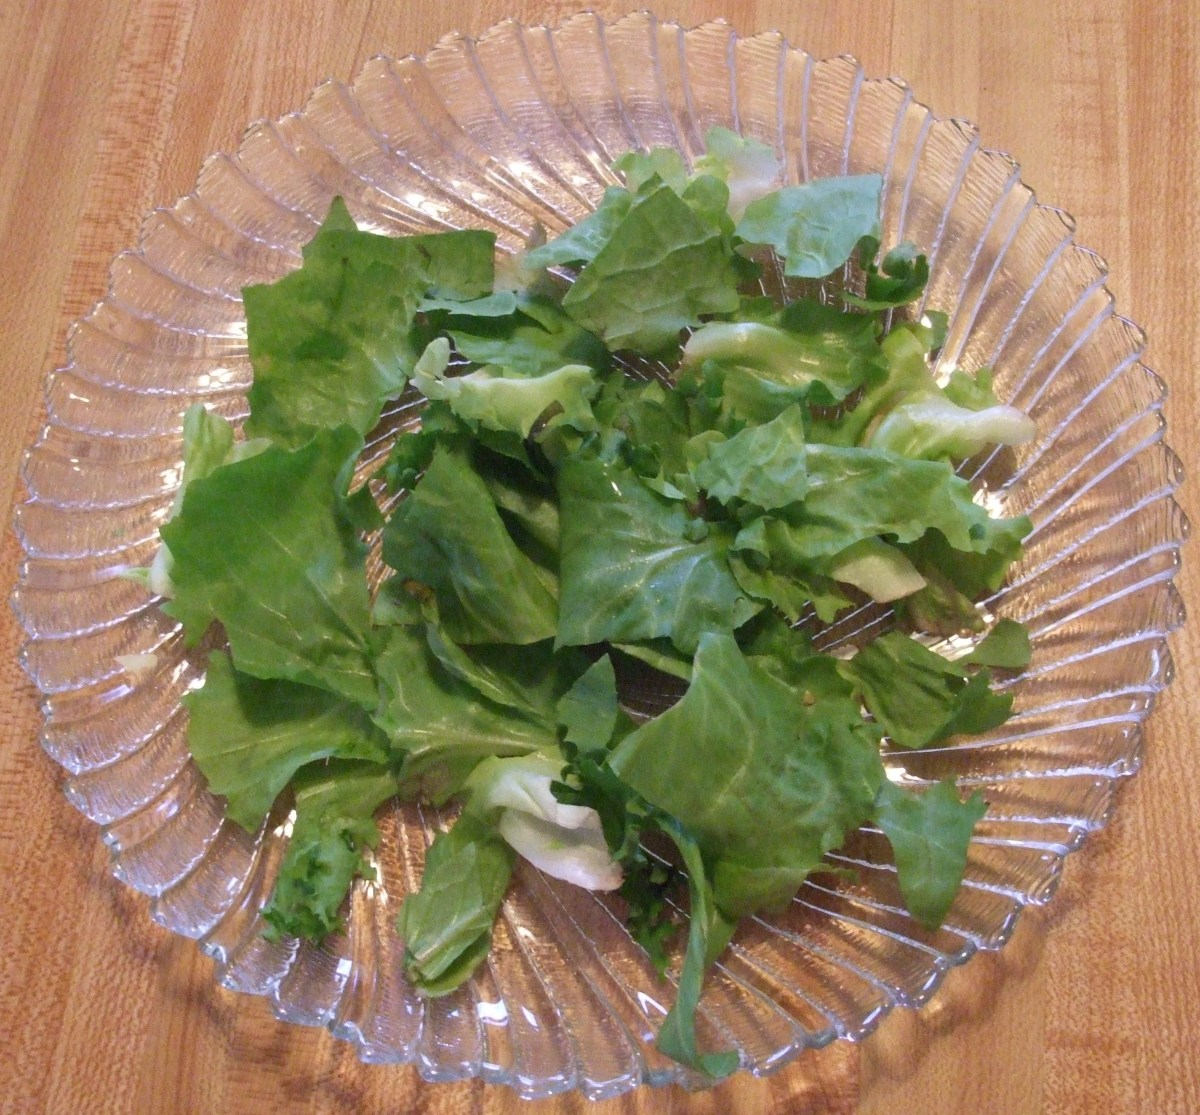 Greens spread on a salad plate.